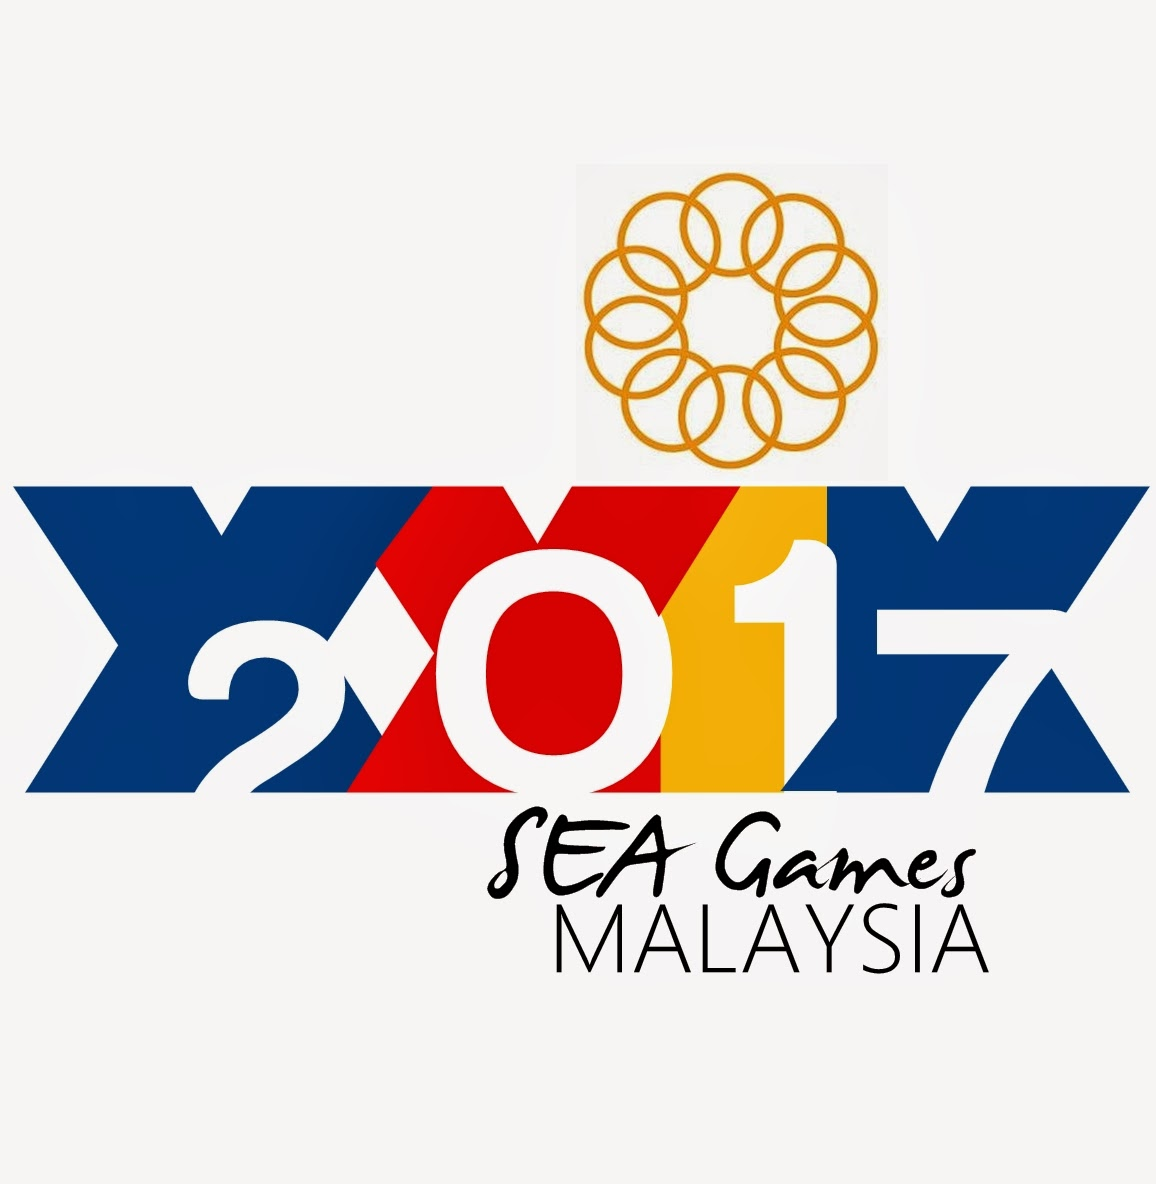 olympic events may comprise over half of 2017 sea games